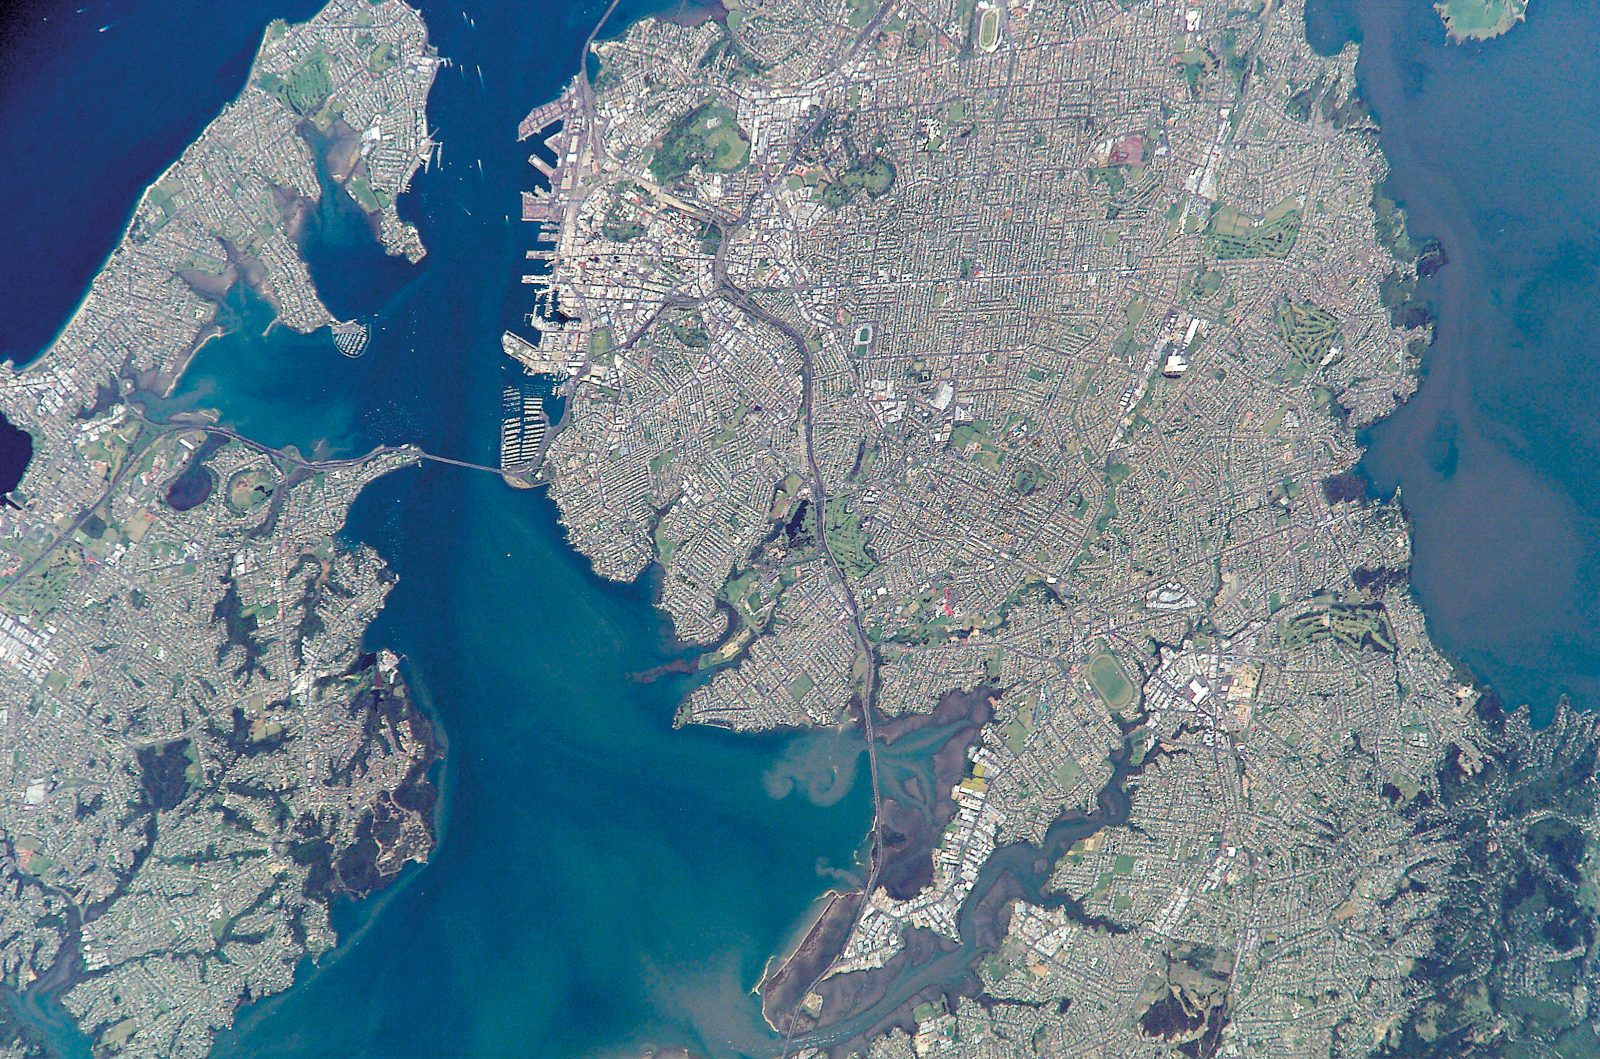 The other a congested metropolis in the north. Downwind of Auckland Island, current eddies can be seen extending east for many kilometres. Auckland city has been photographed with the aid of an 800 mm telephoto lens, which gives a considerable degree of enlargement.